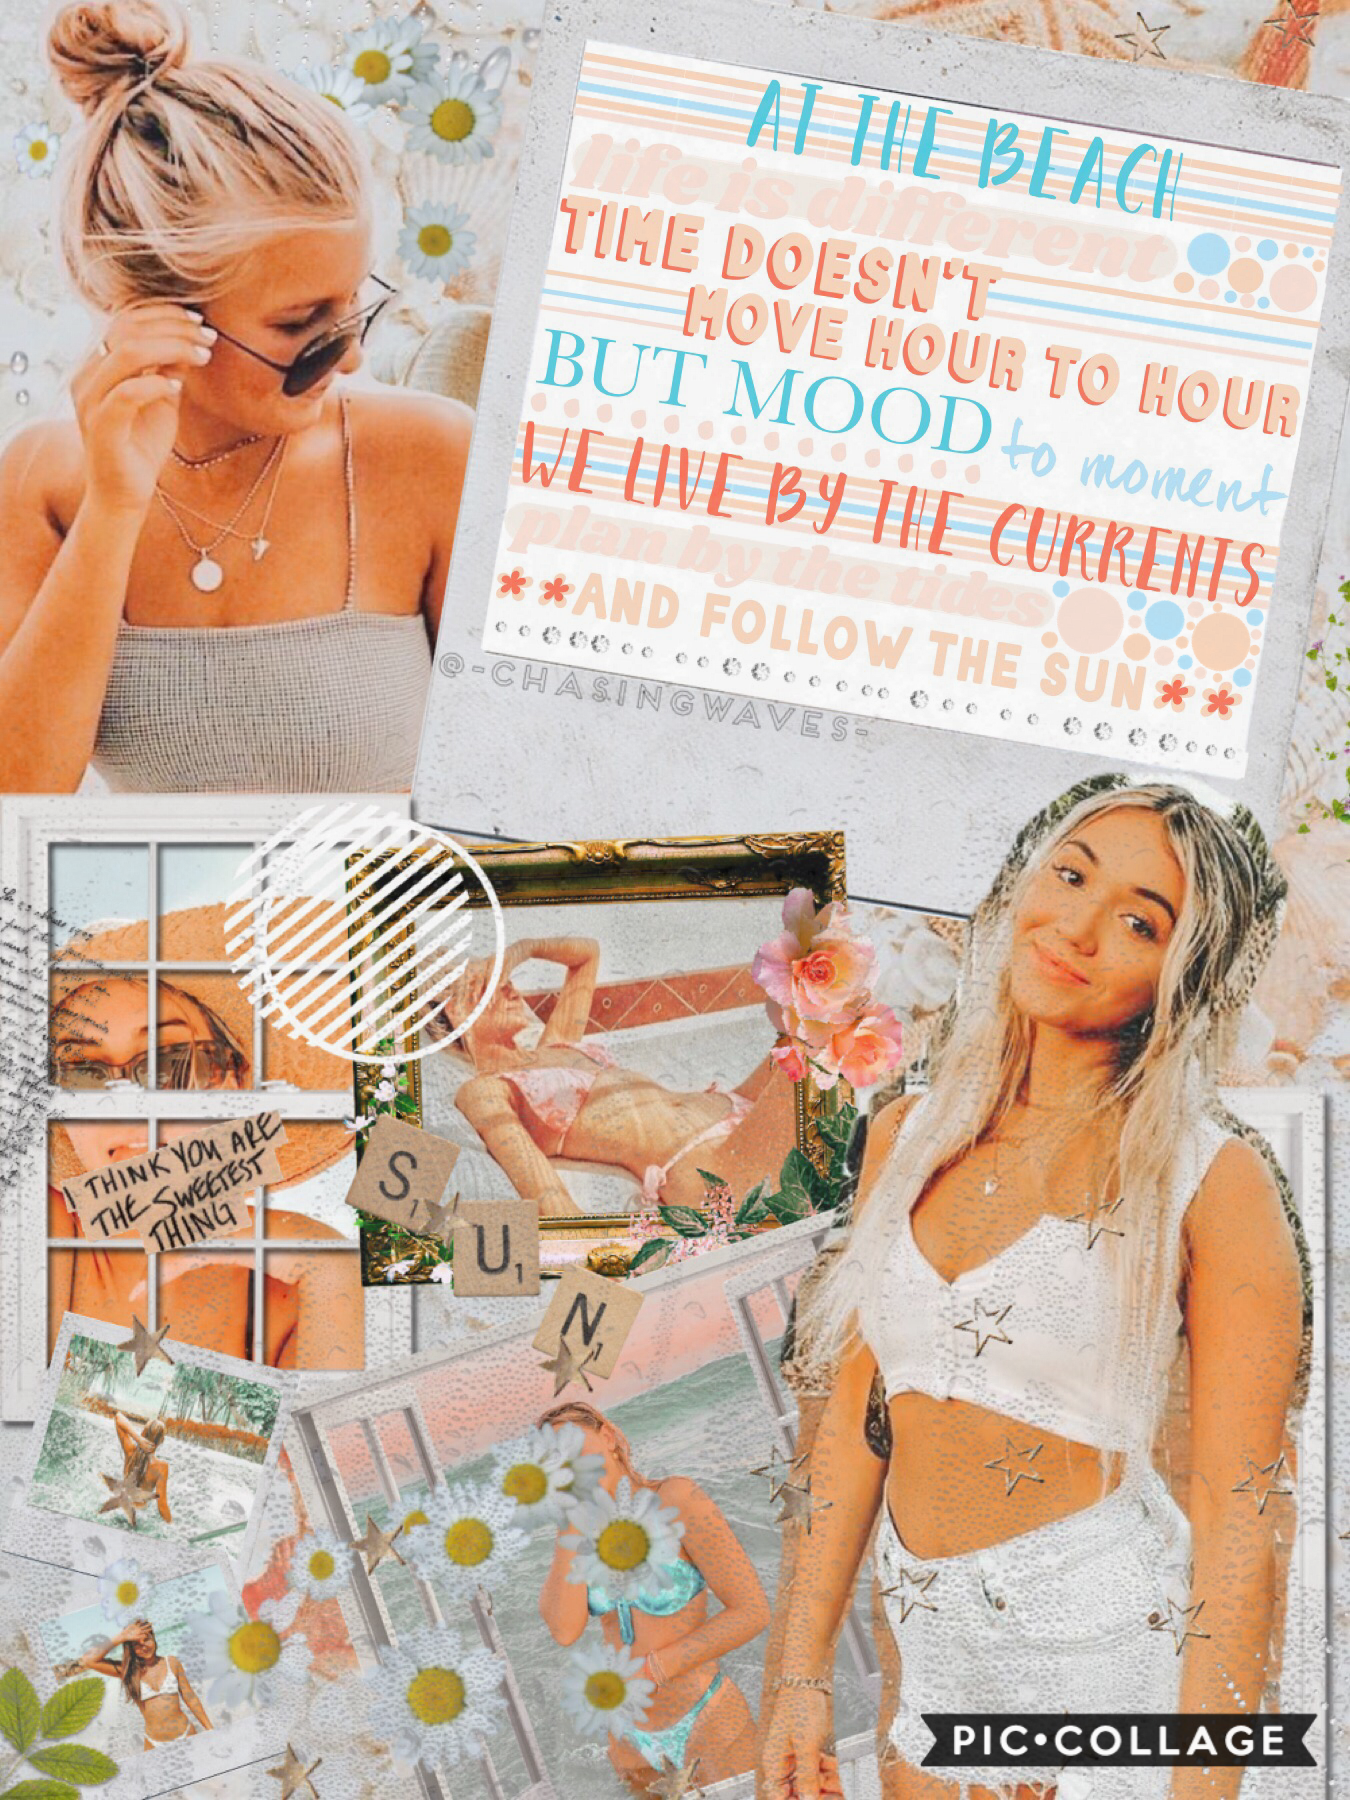 Tap As promised, here's the monthly collage for this account! I think I'm going to use this account to post beach/summer collages and peachy collages because they're the collages that don't fit on my main and I really like the two!